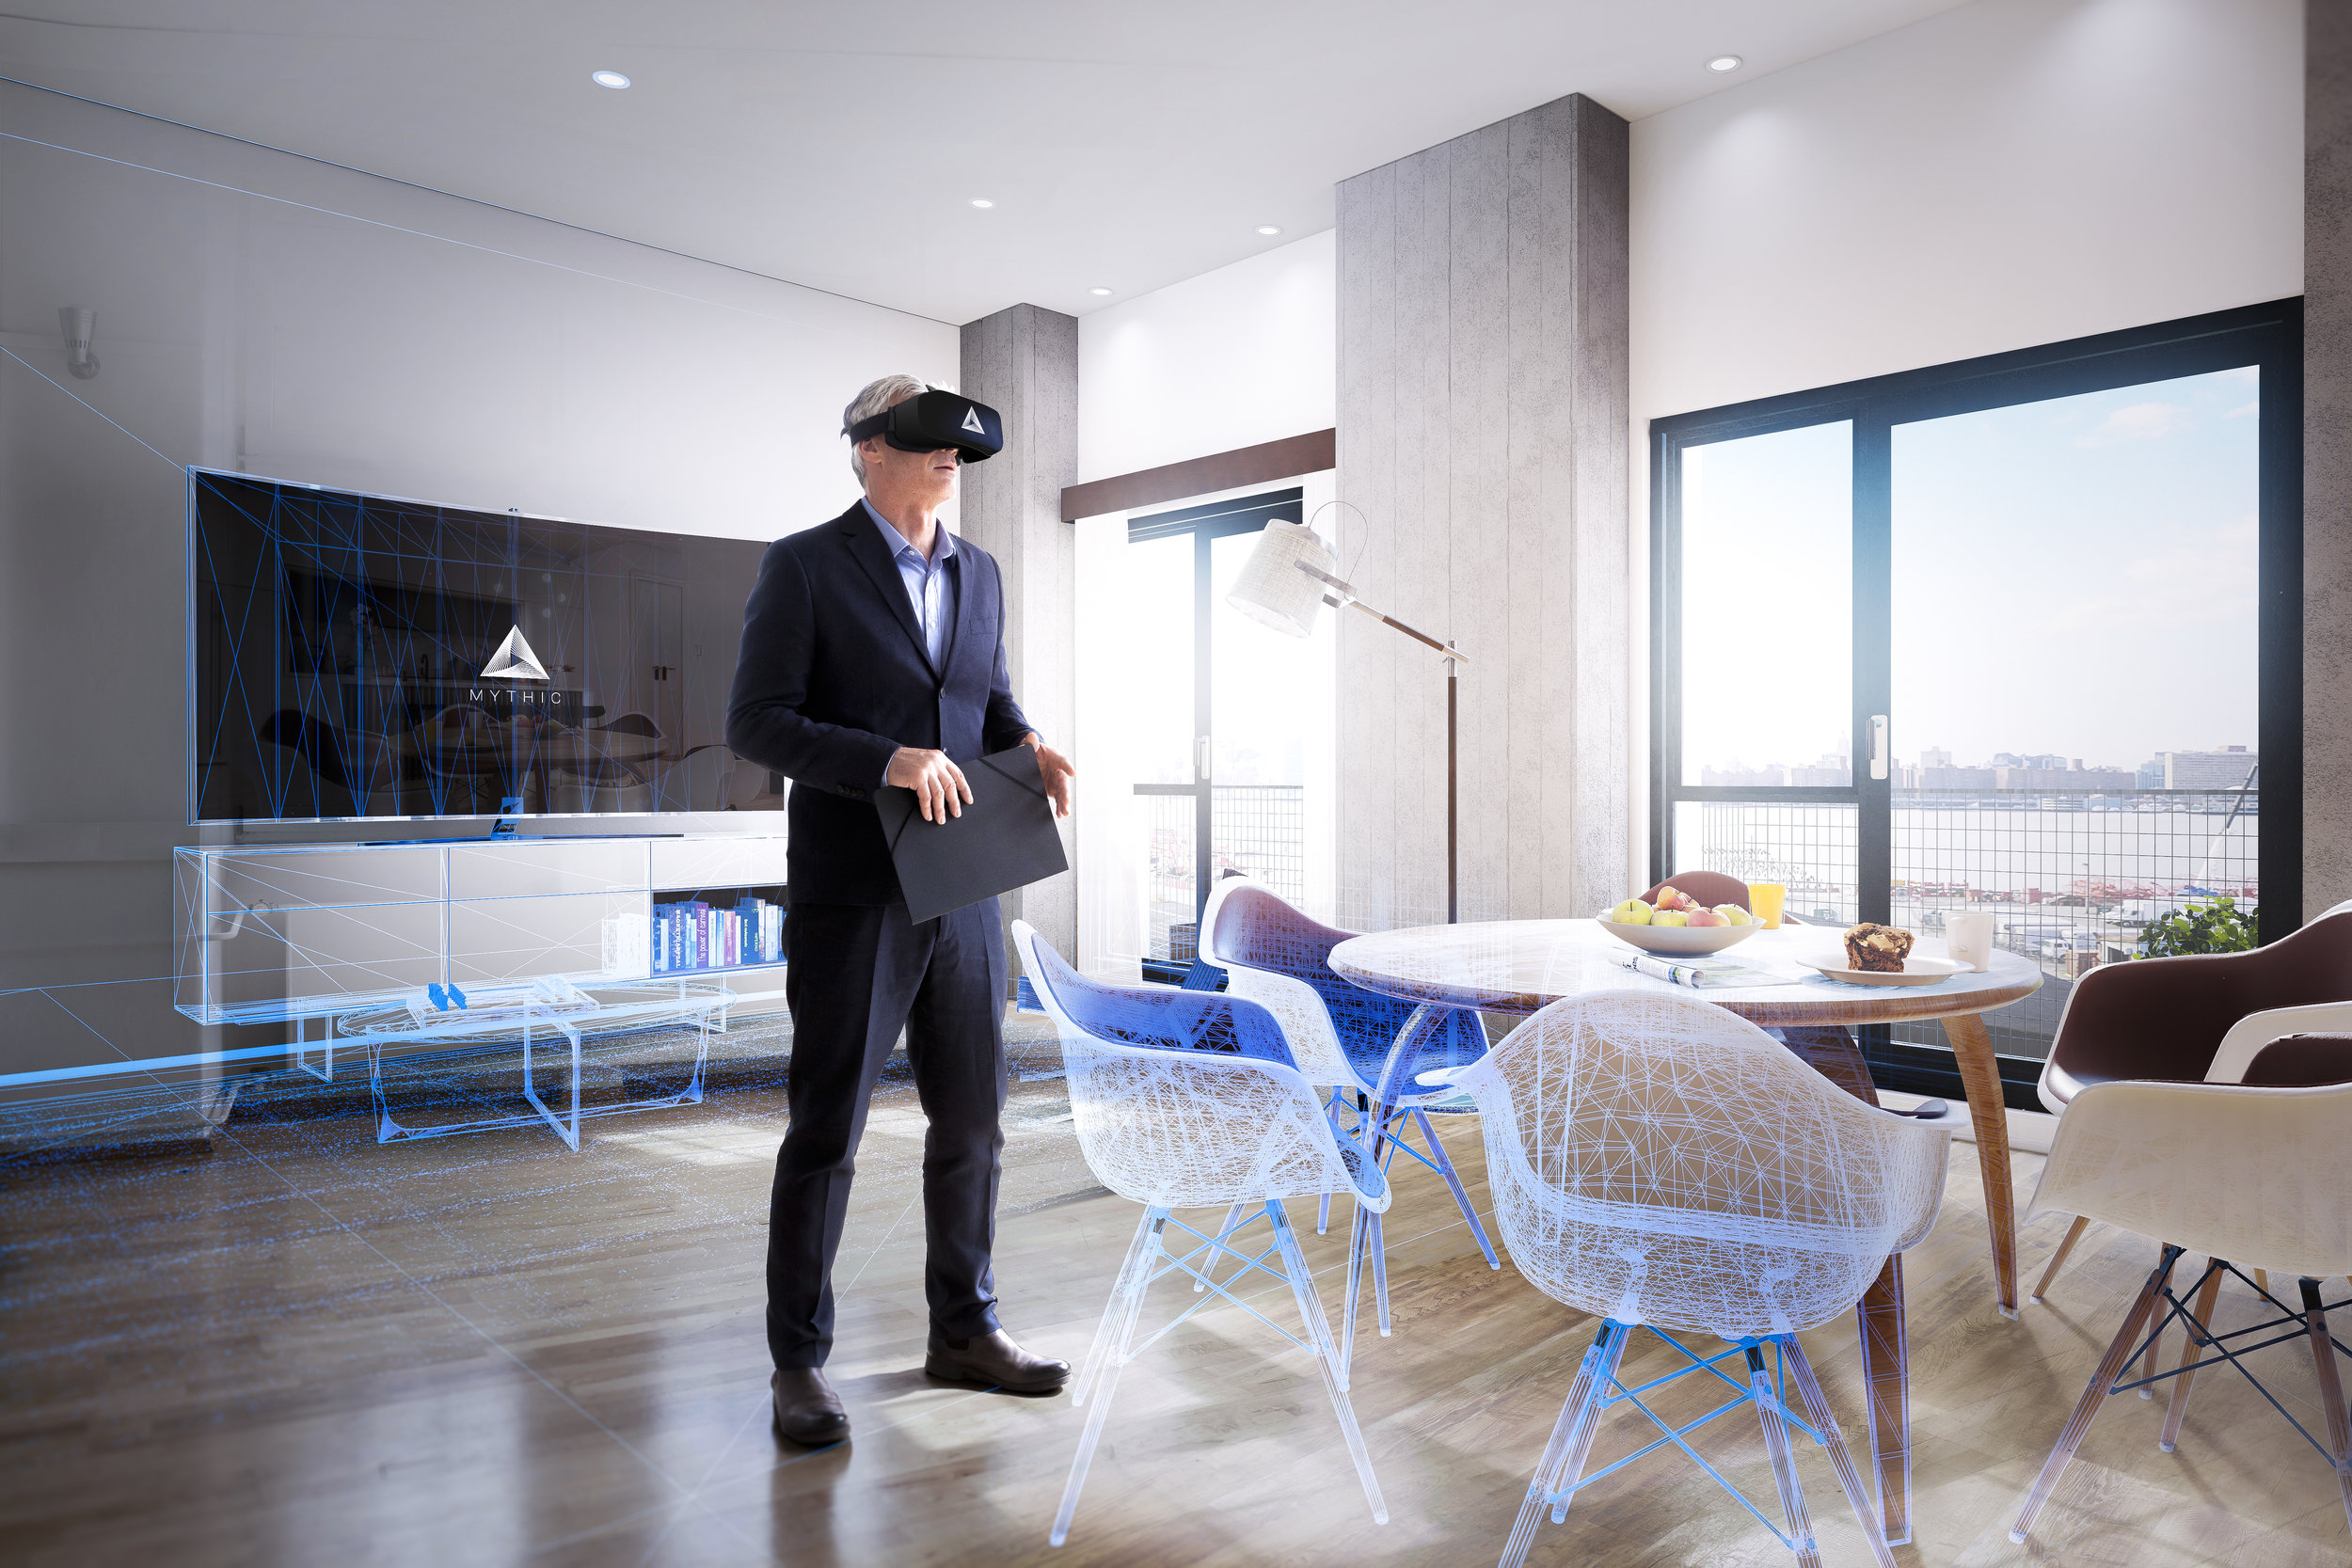 vr headset in real estate websites